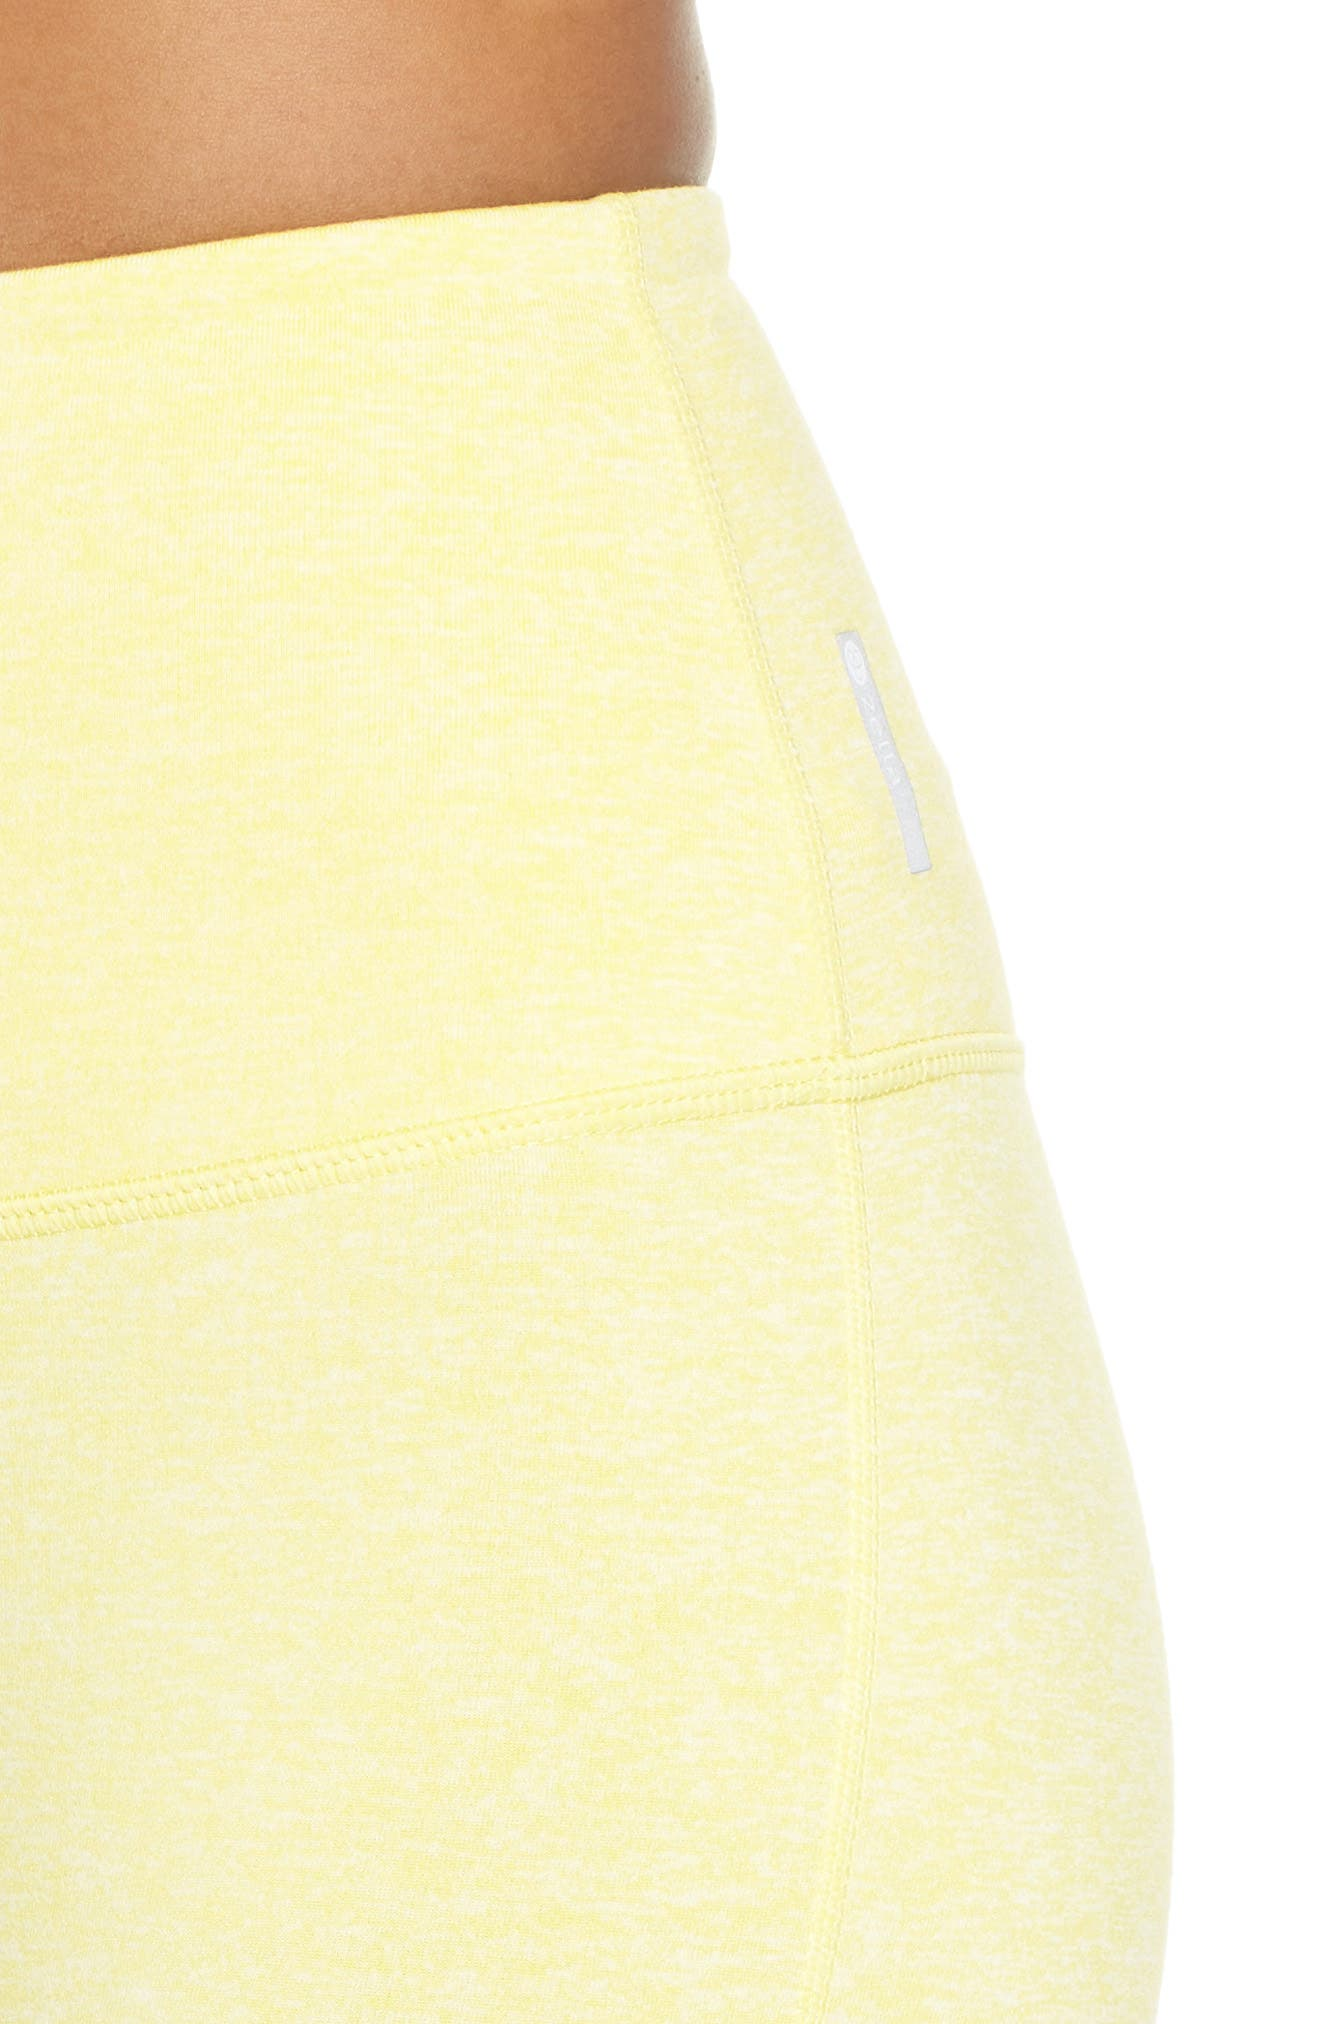 Live In High Waist Crop Recycled Leggings,                             Alternate thumbnail 4, color,                             YELLOW GLOW